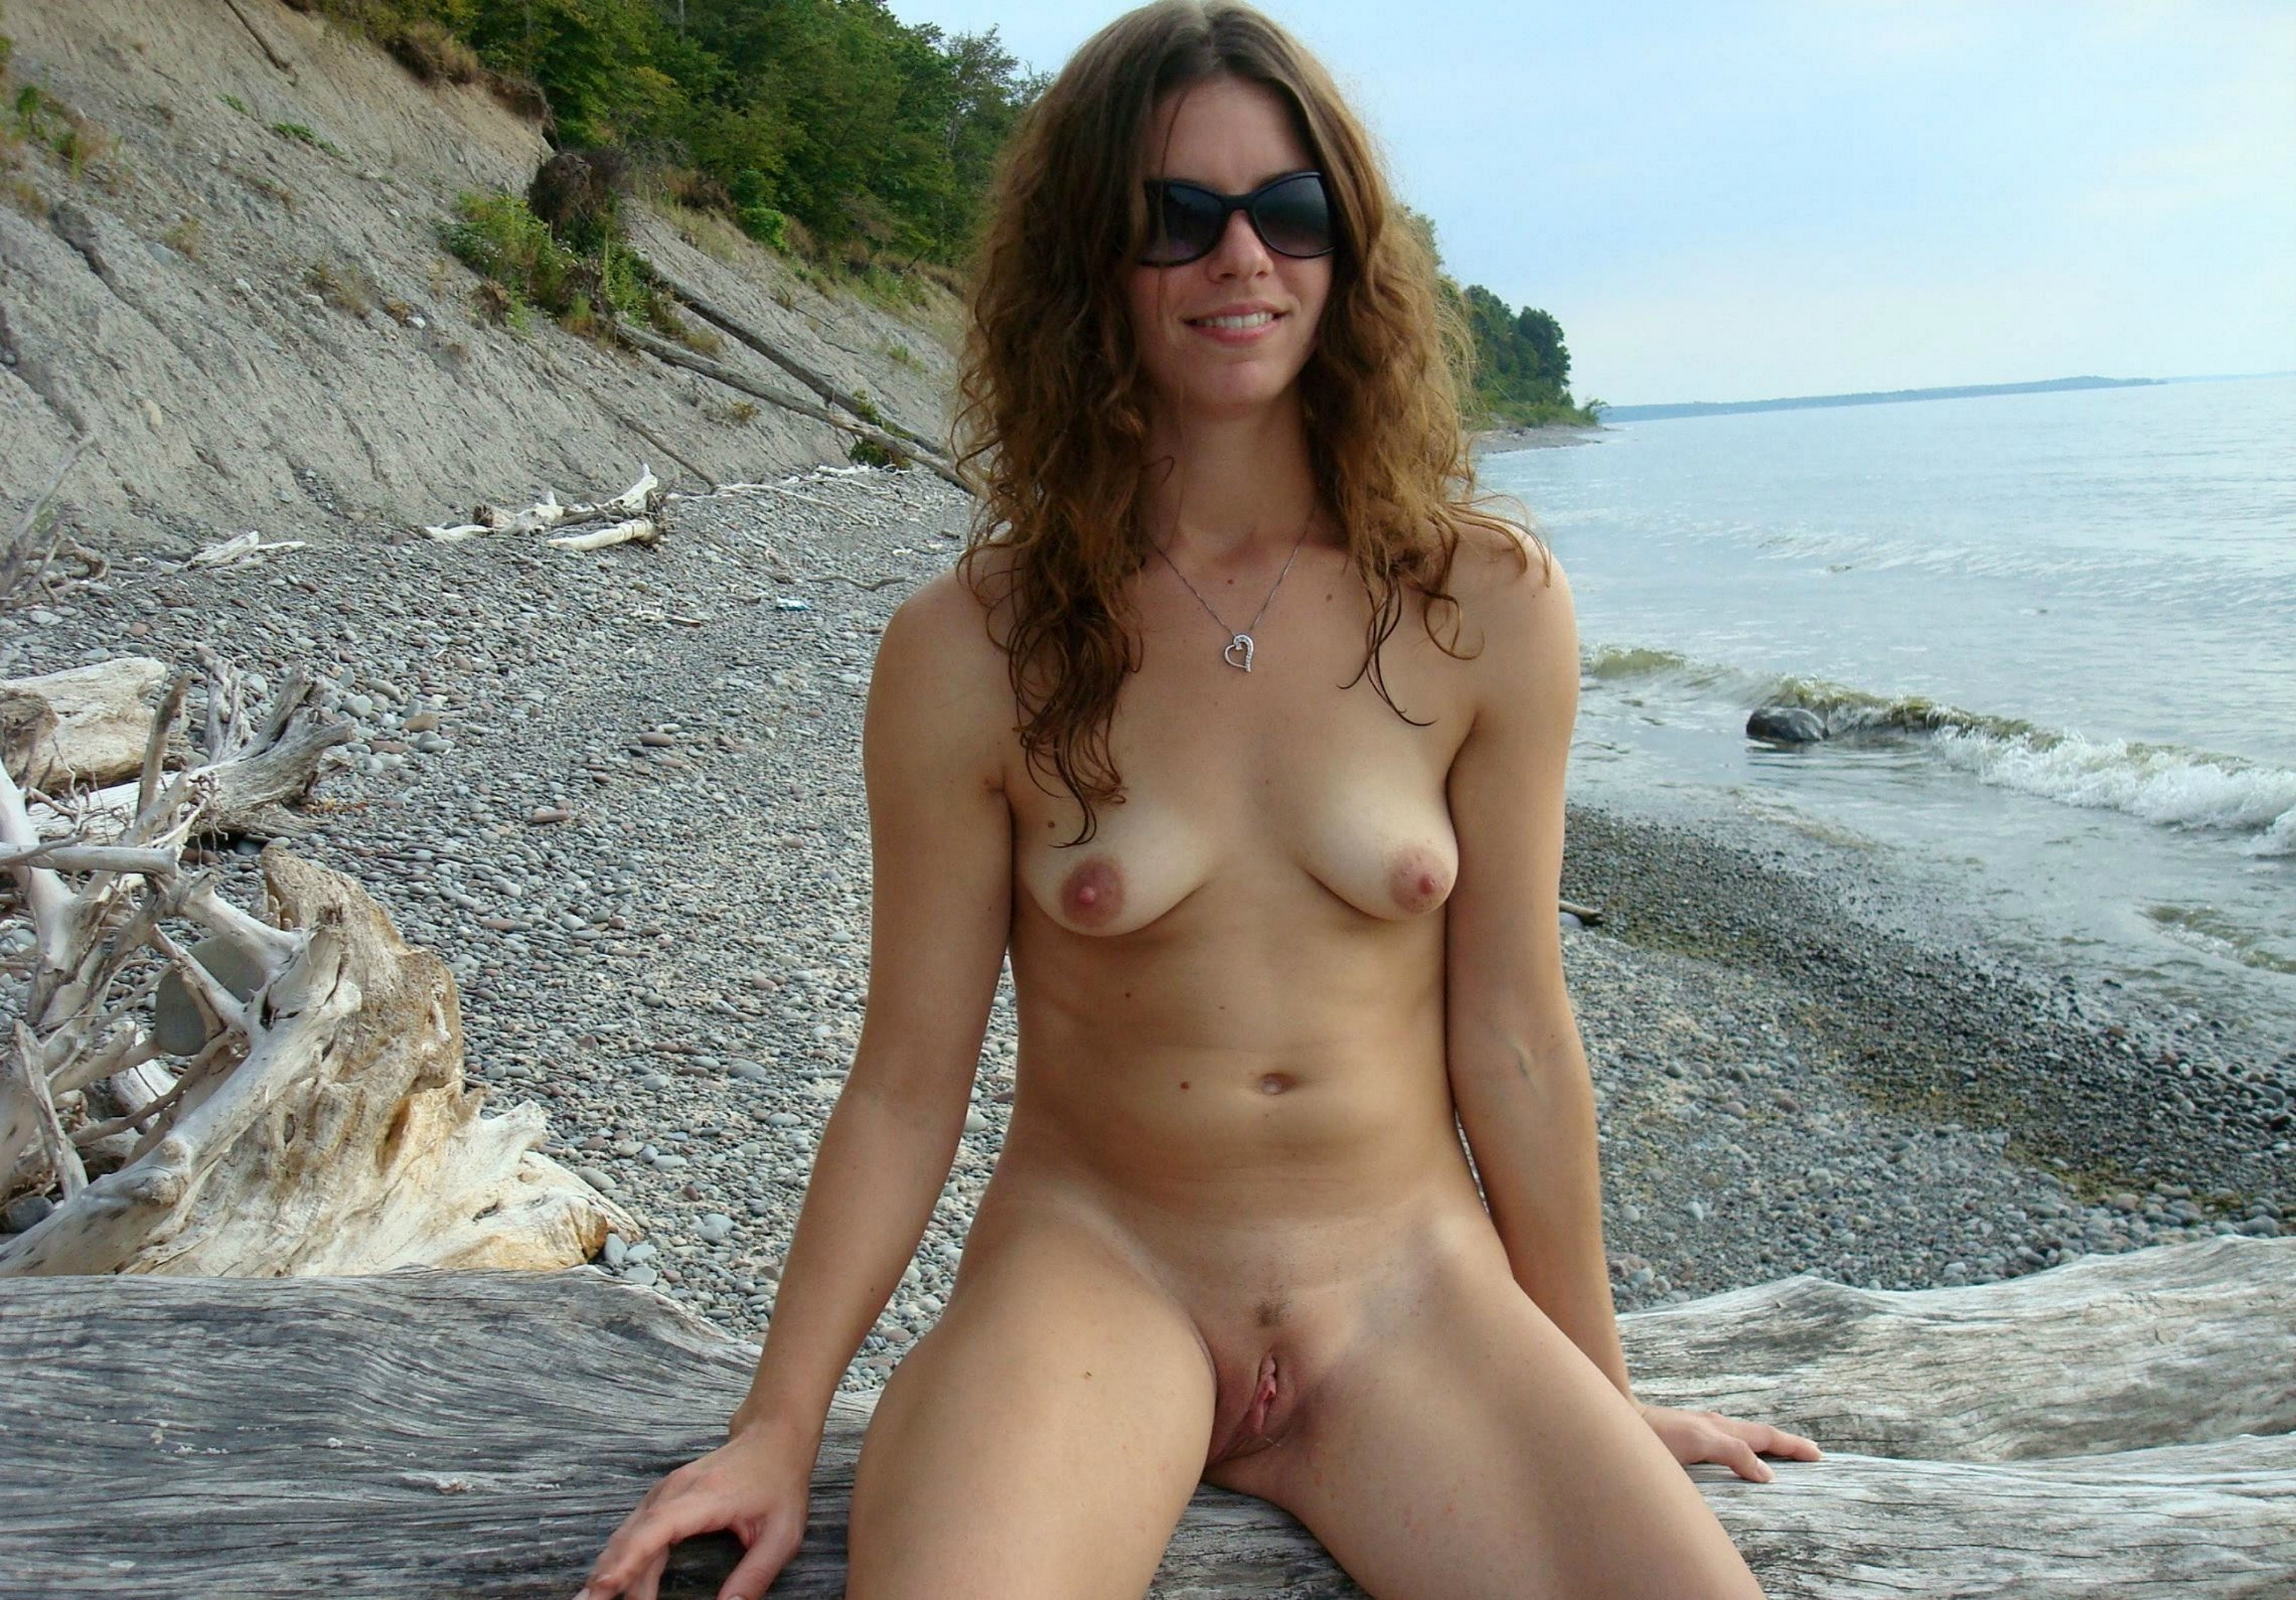 Nudist beach pussy not that